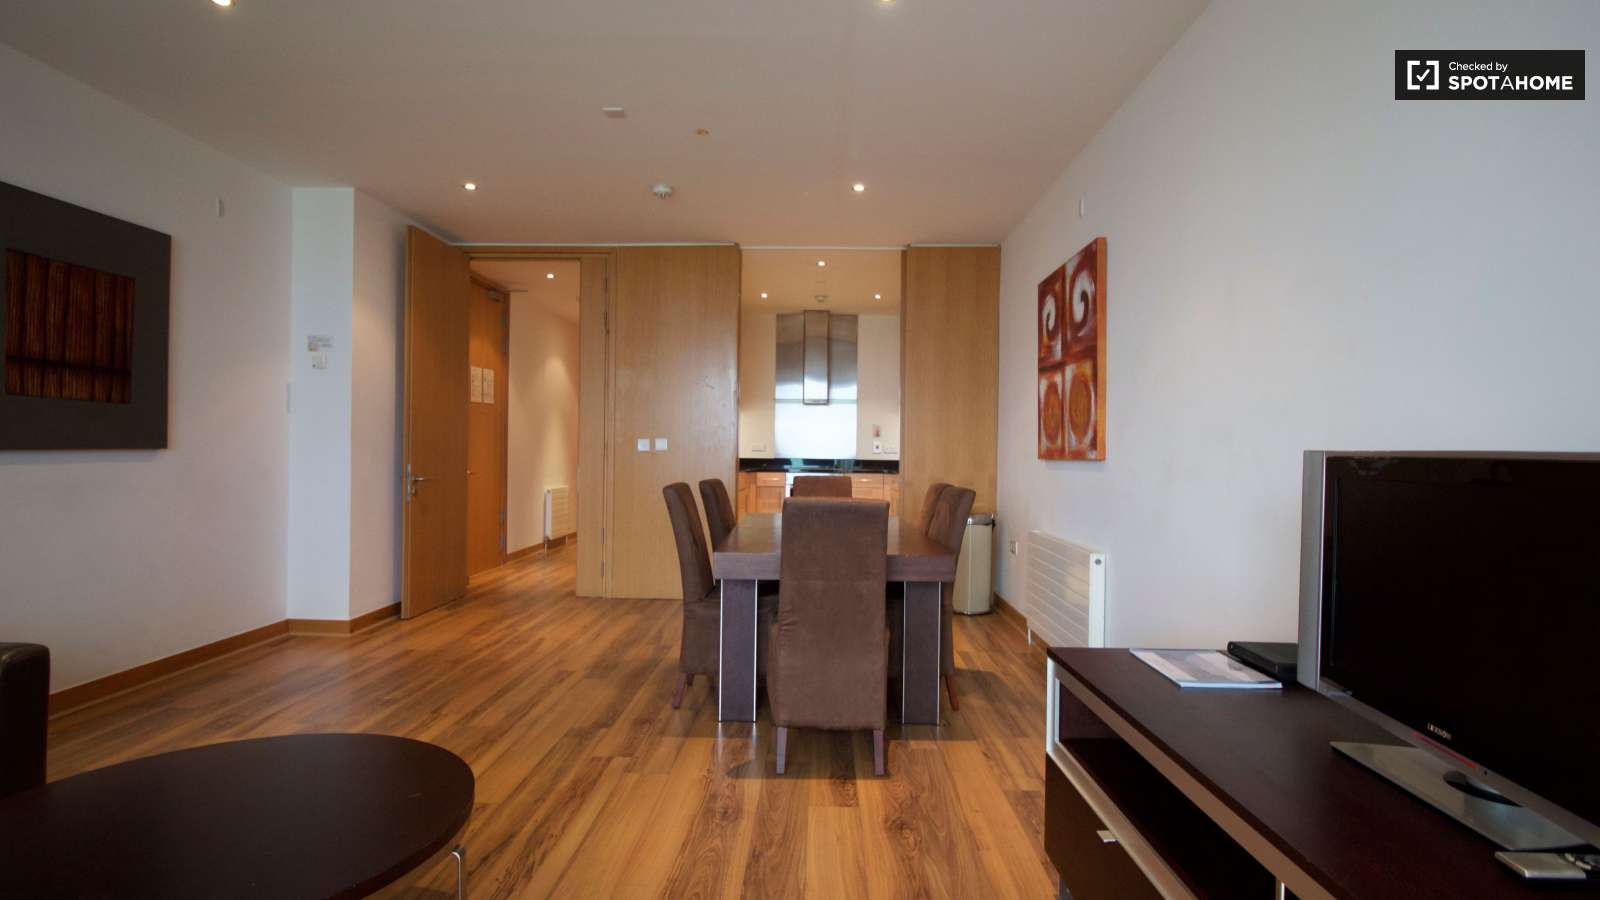 2 bedroom apartment with utilities included in dublin (ref: 97143